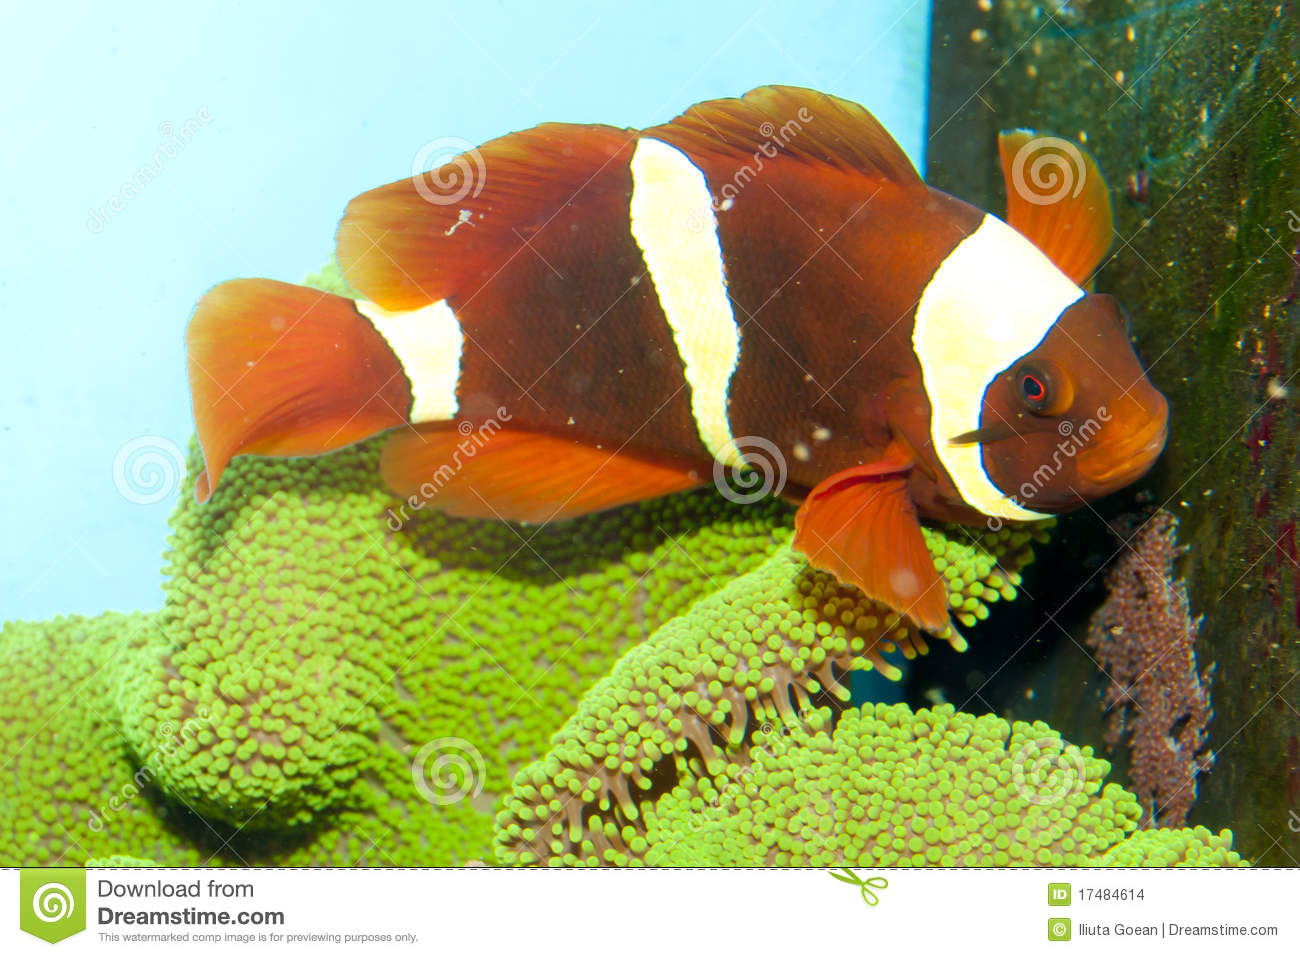 Maroon Yellow Stripe Clownfish Pair with roe Yellow Stripe Maroon Clownfish